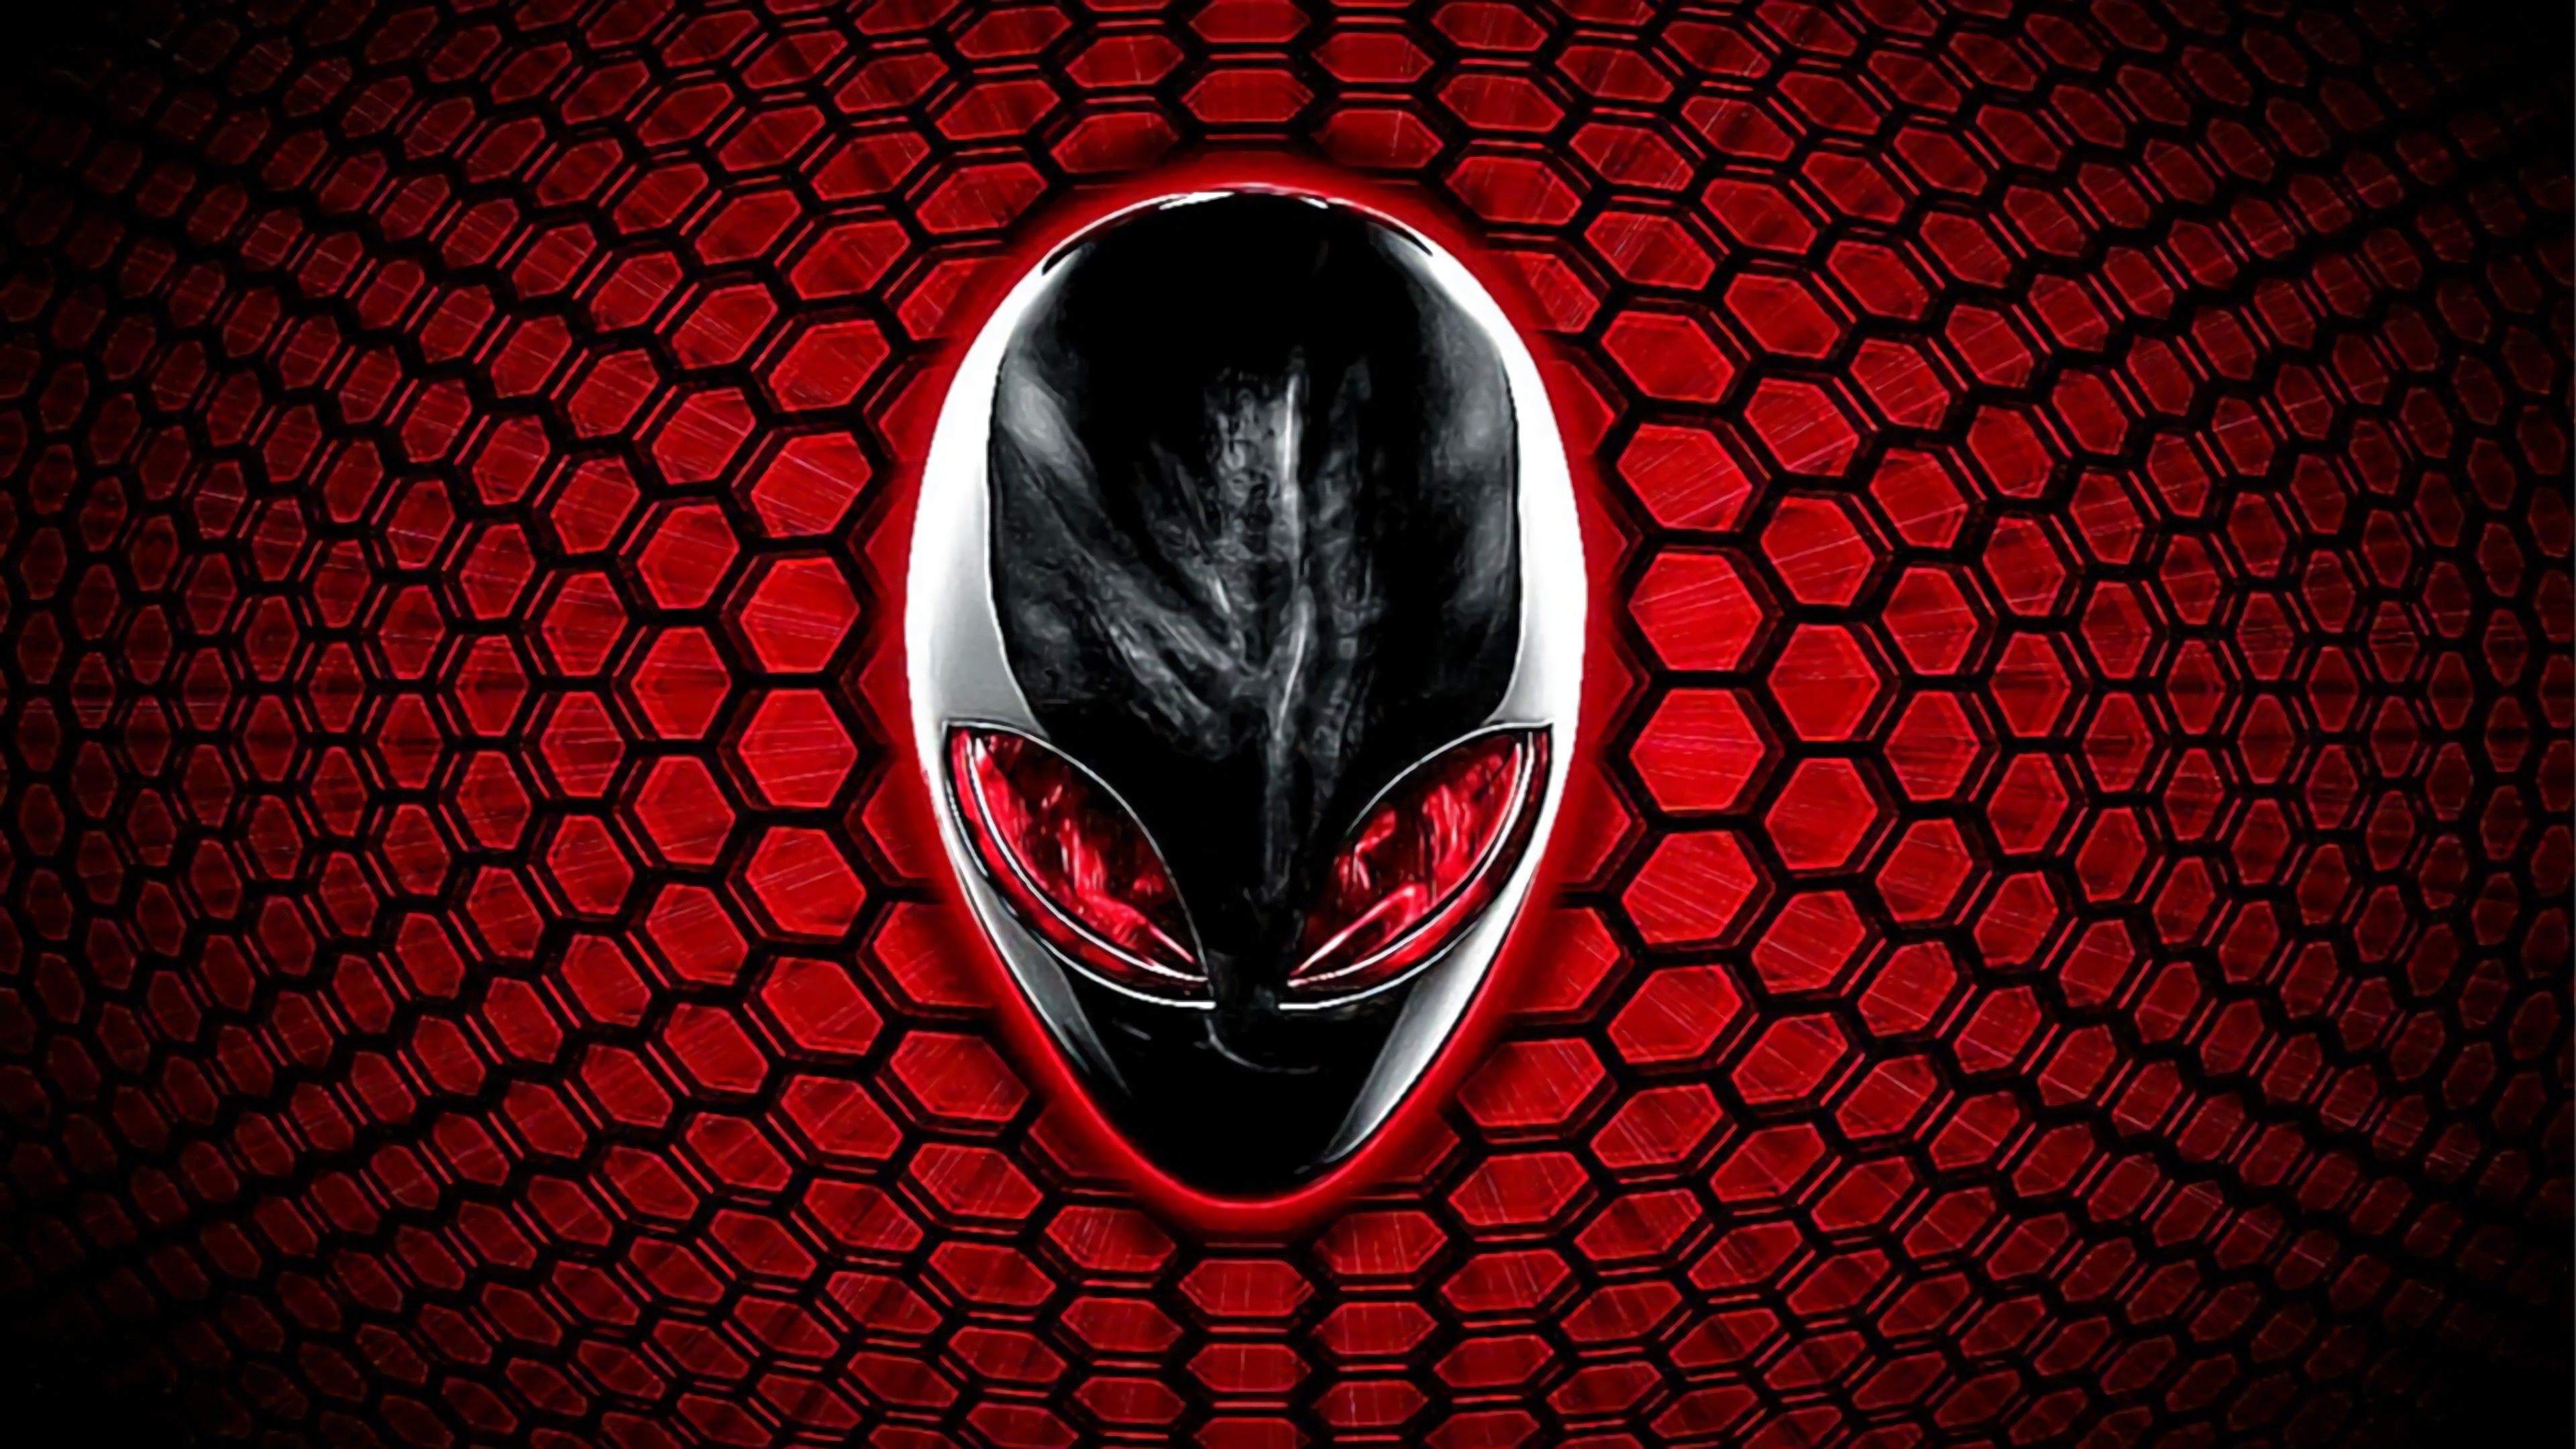 Res 3840x2160 Gaming Desktop Wallpaper 4k Alienware Logo Red Eyes 818 In 2020 Gaming Wallpapers Alienware Hd Wallpaper